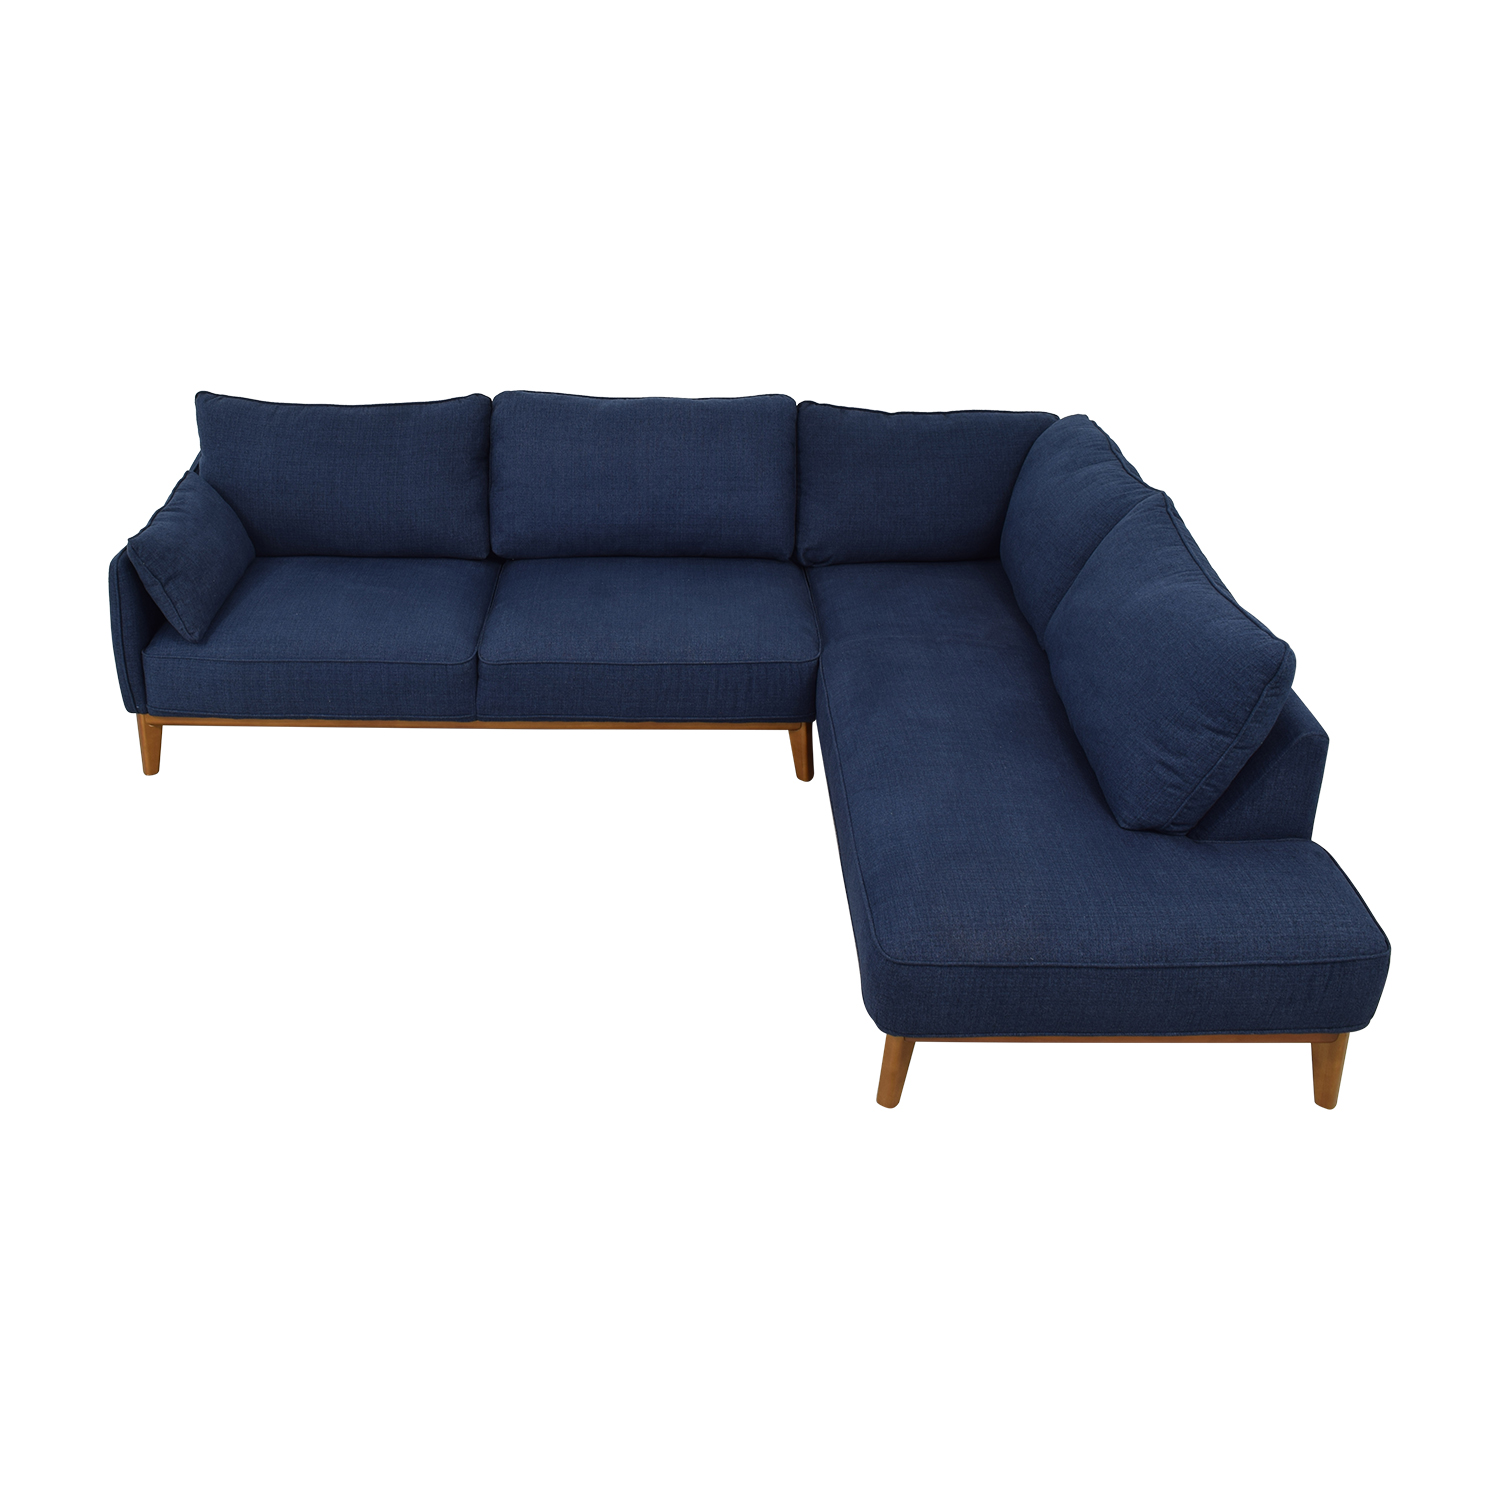 Macy's Jollene Blue Two-Piece Sectional / Sectionals